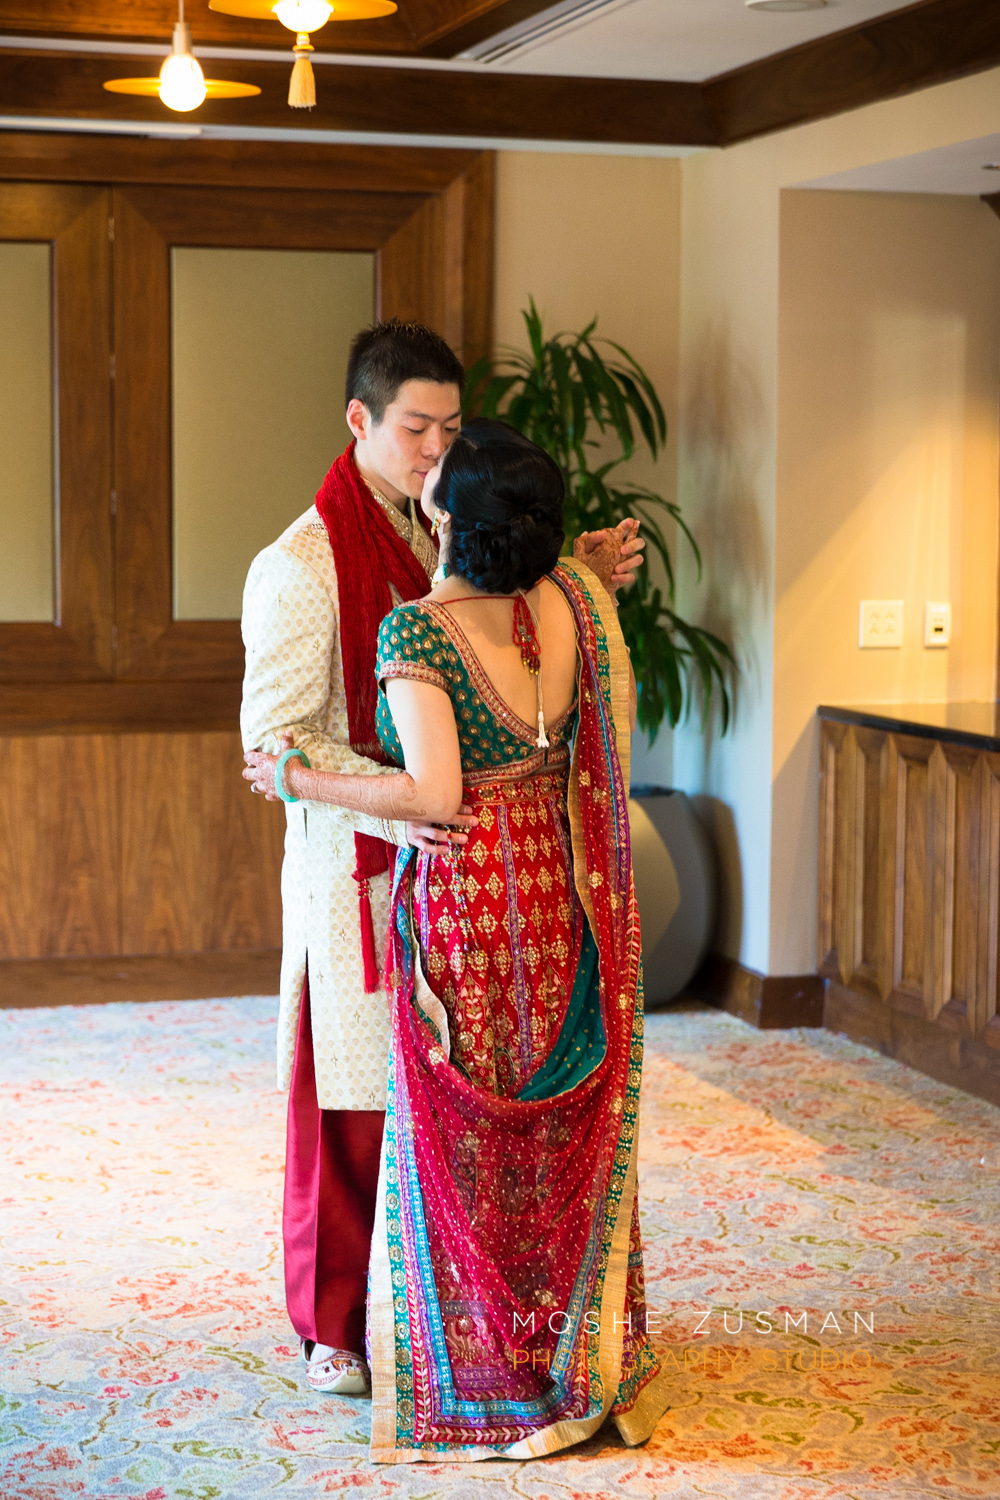 Indian_Wedding_Photography_Moshe_Zusman_Mandarin_Oriental_DC_Naina_Chris-30.jpg